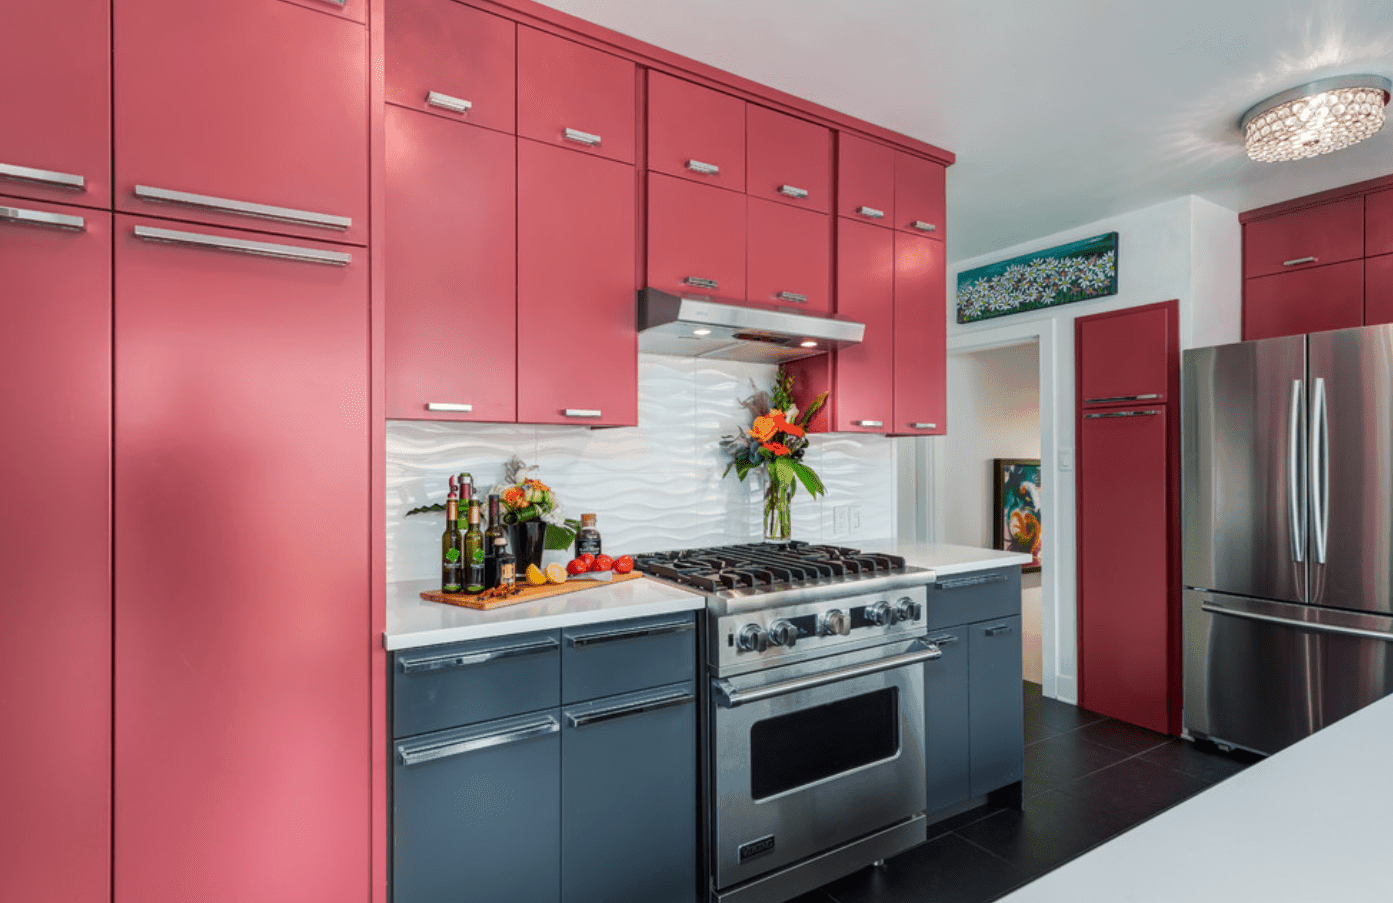 This kitchen is filled with salmon pink and gray cabinetry with white wavy backsplash tiles and stainless steel appliances.